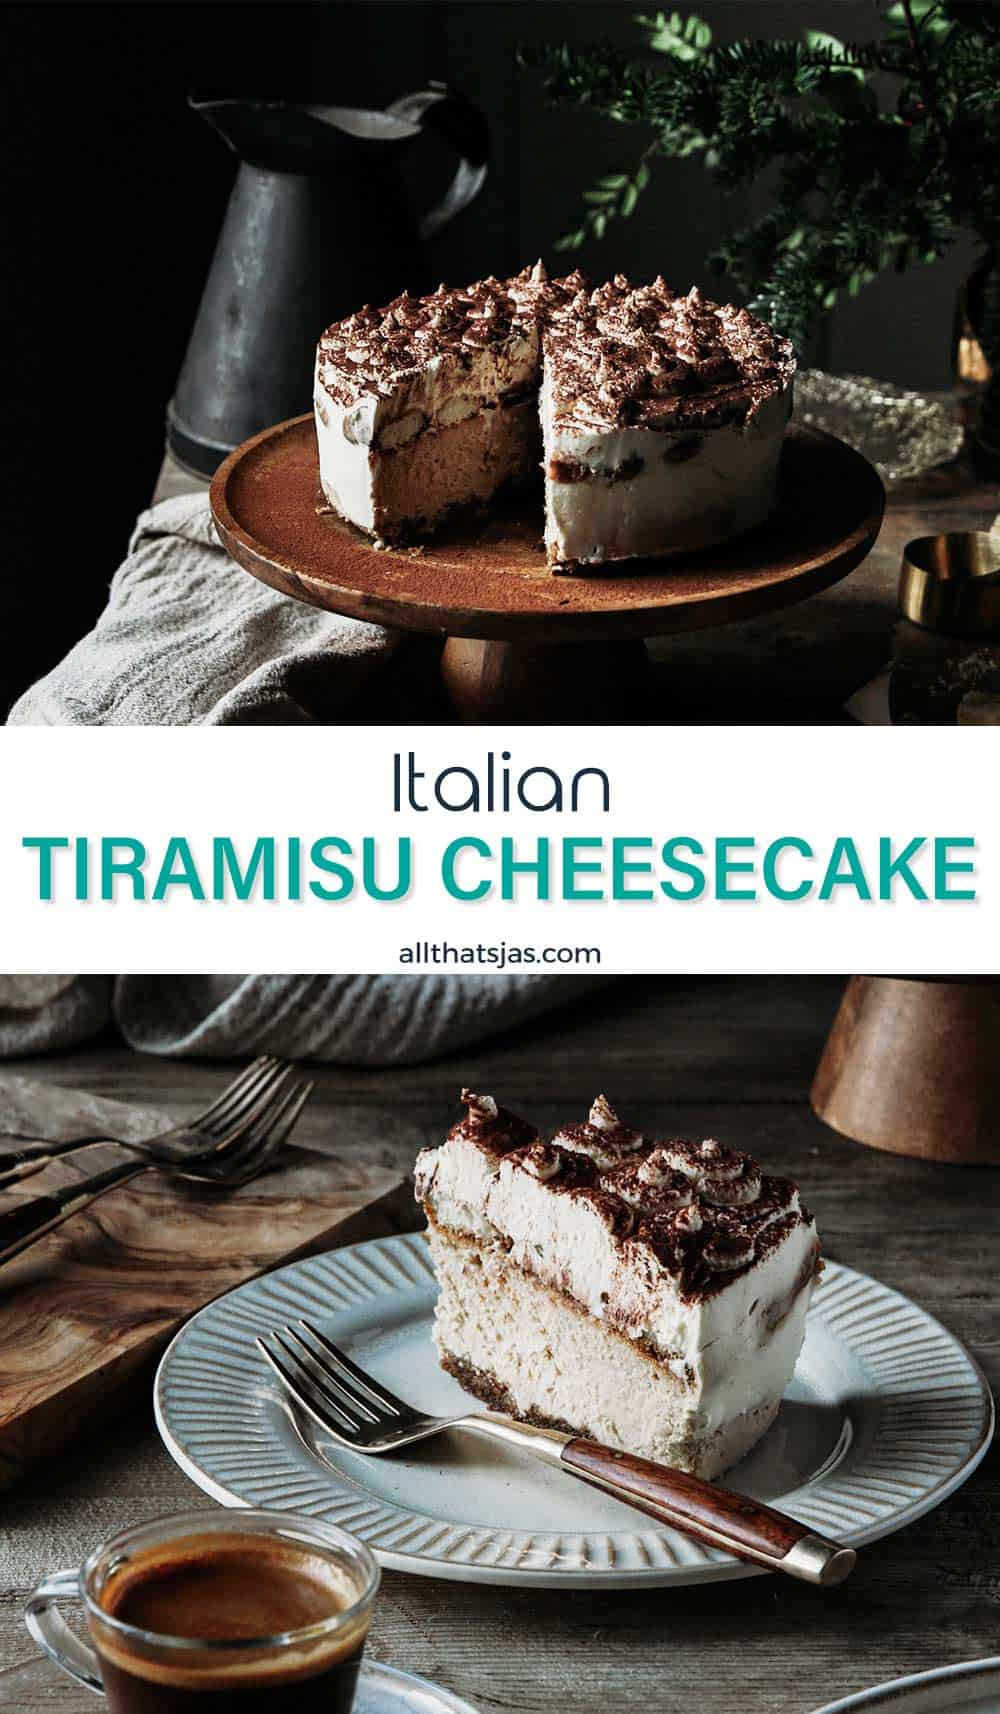 Two photo image of Italian tiramisu cheesecake with text overlay in the middle